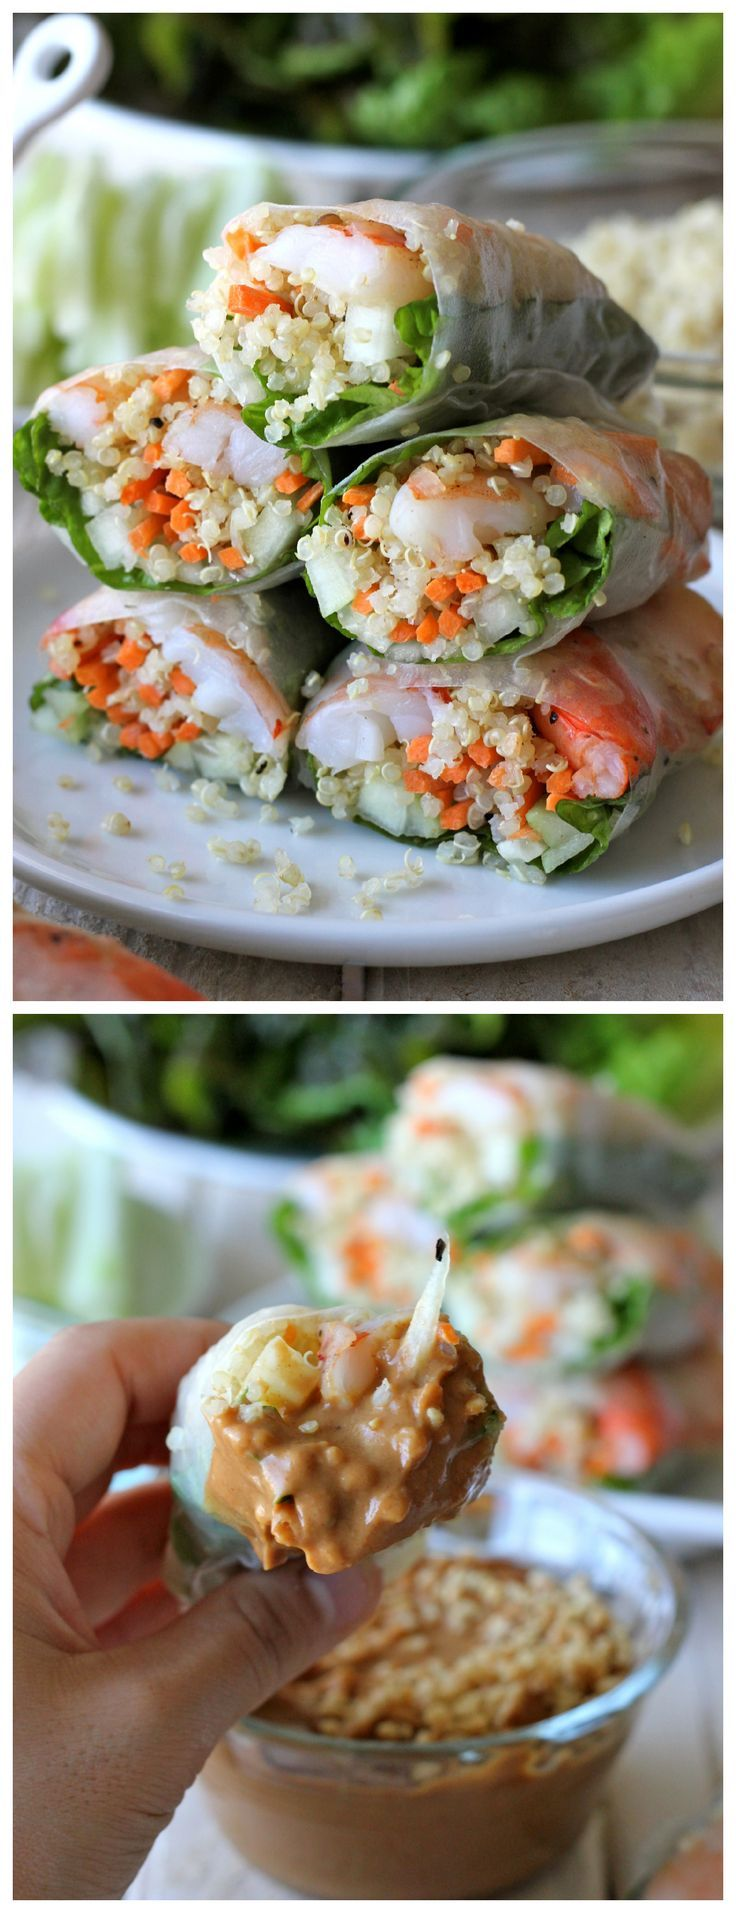 Roasted Shrimp Quinoa Spring Rolls - Quinoa is a wonderful protein-packed substitute for rice noodles in these EASY Spring Rolls! Includes a recipe for  Spicy Peanut Sauce!